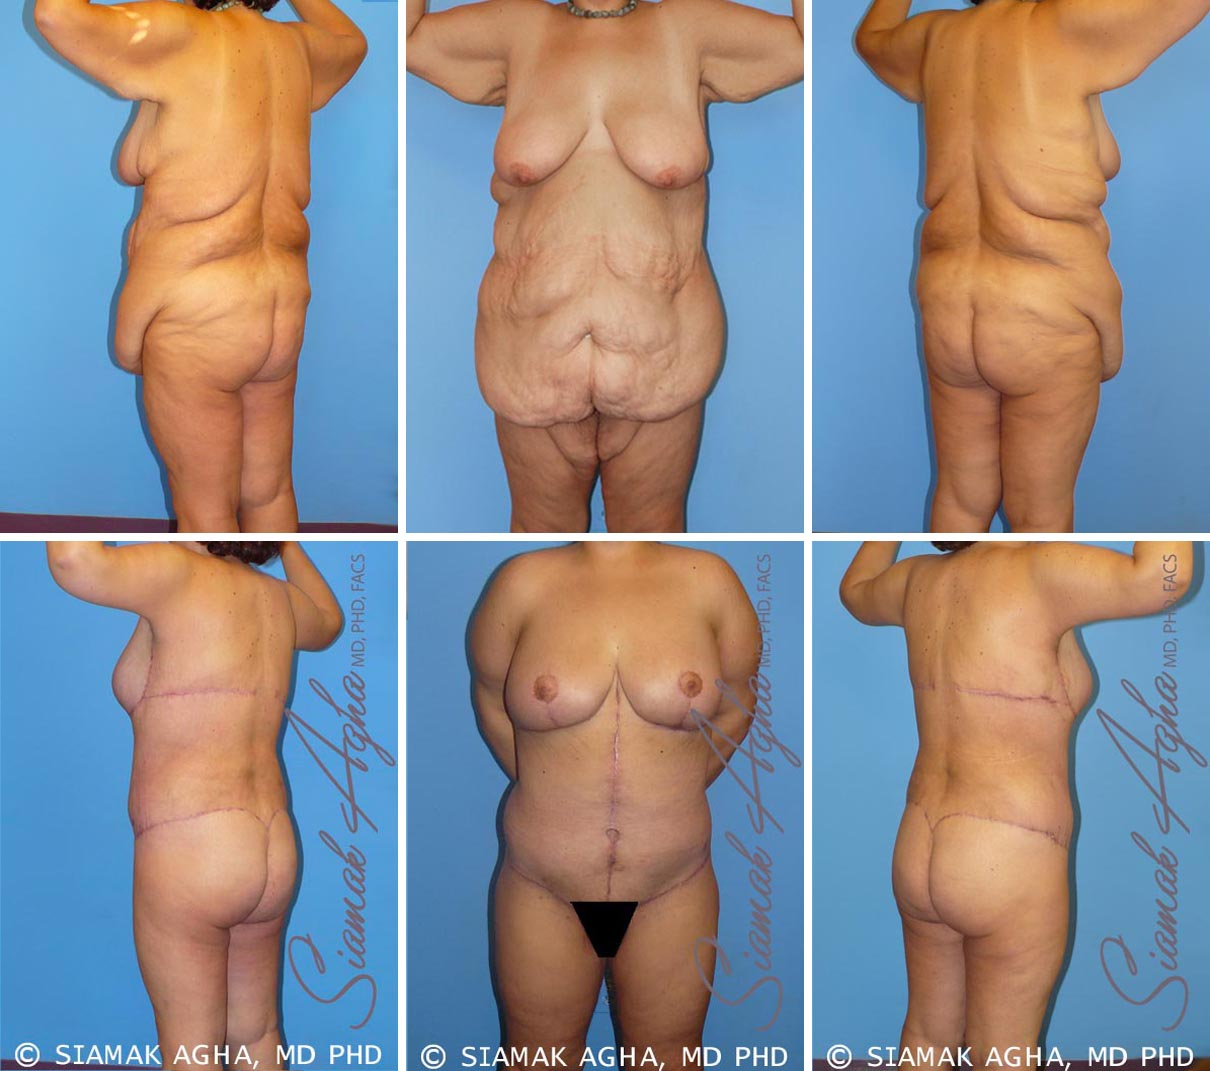 Total Body Lift Before and After Set 3